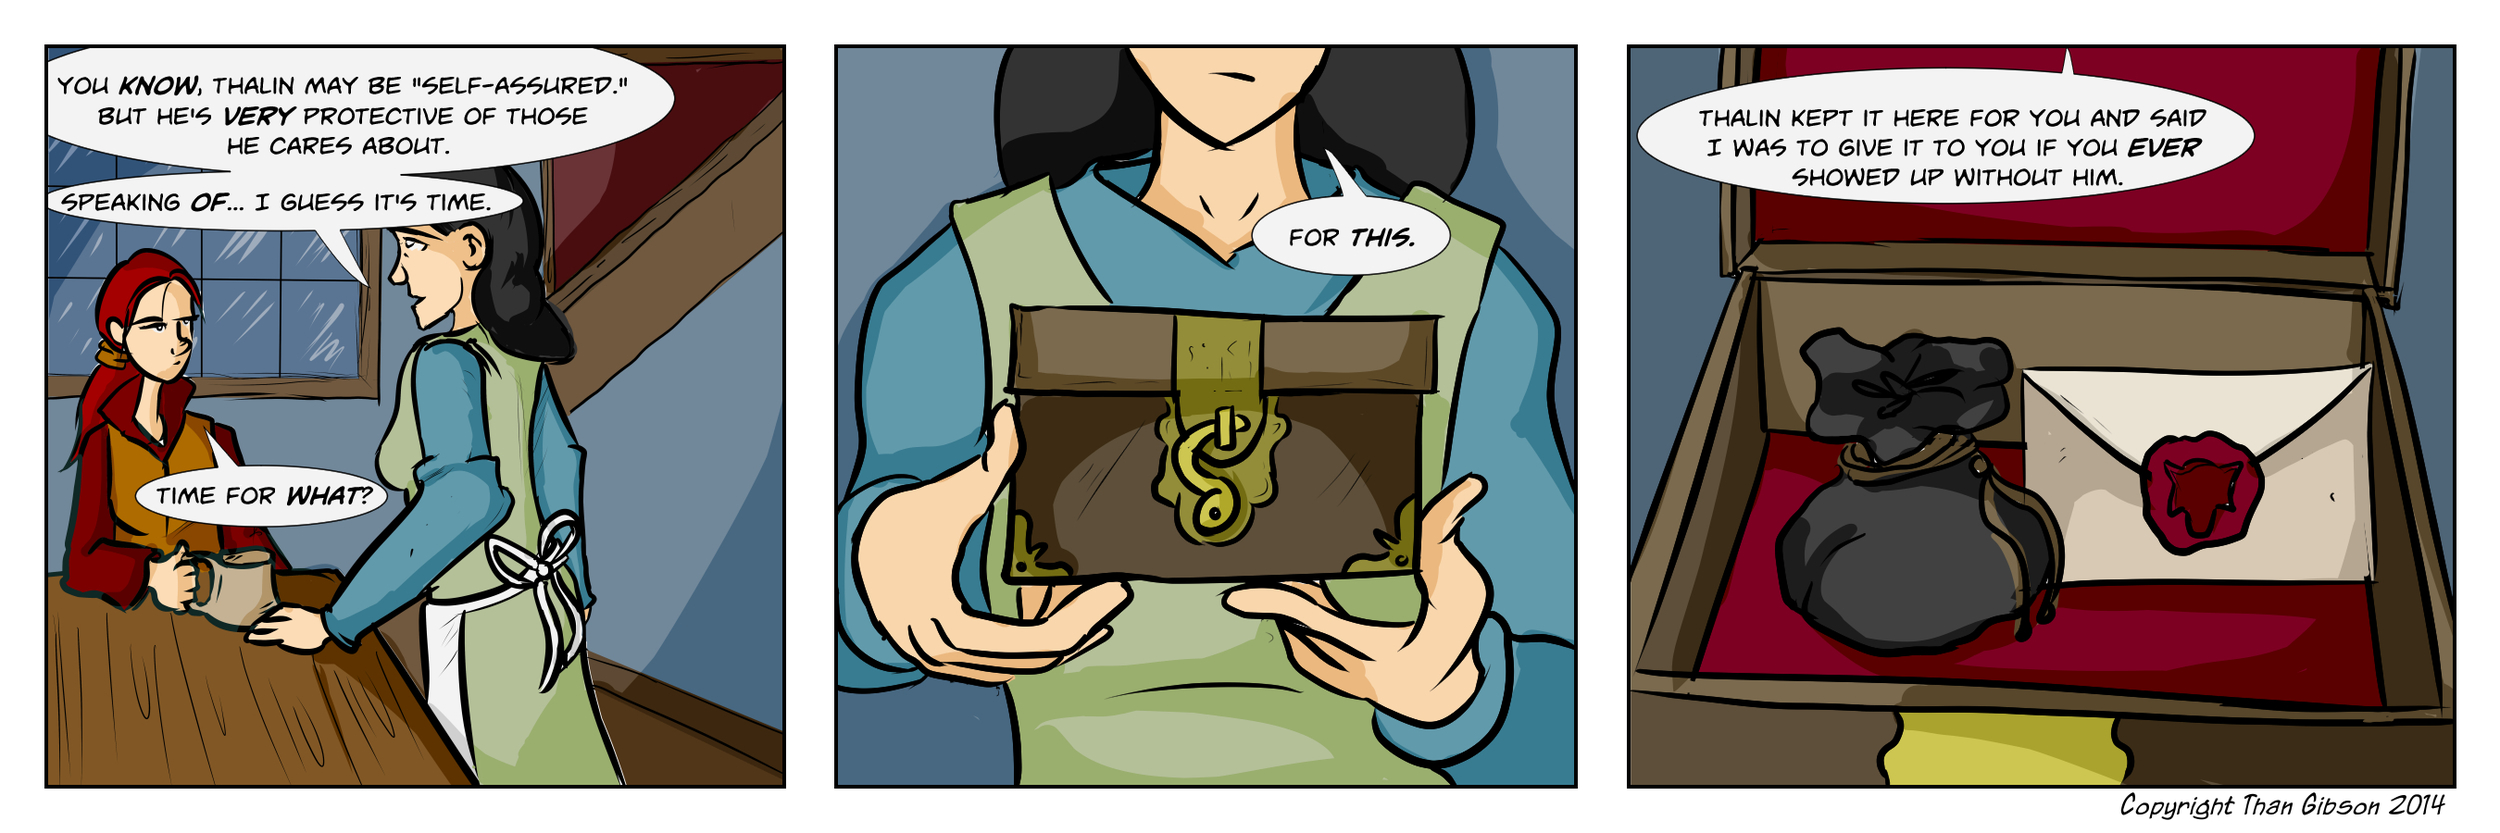 Strip 27 -Click the image for a larger view!